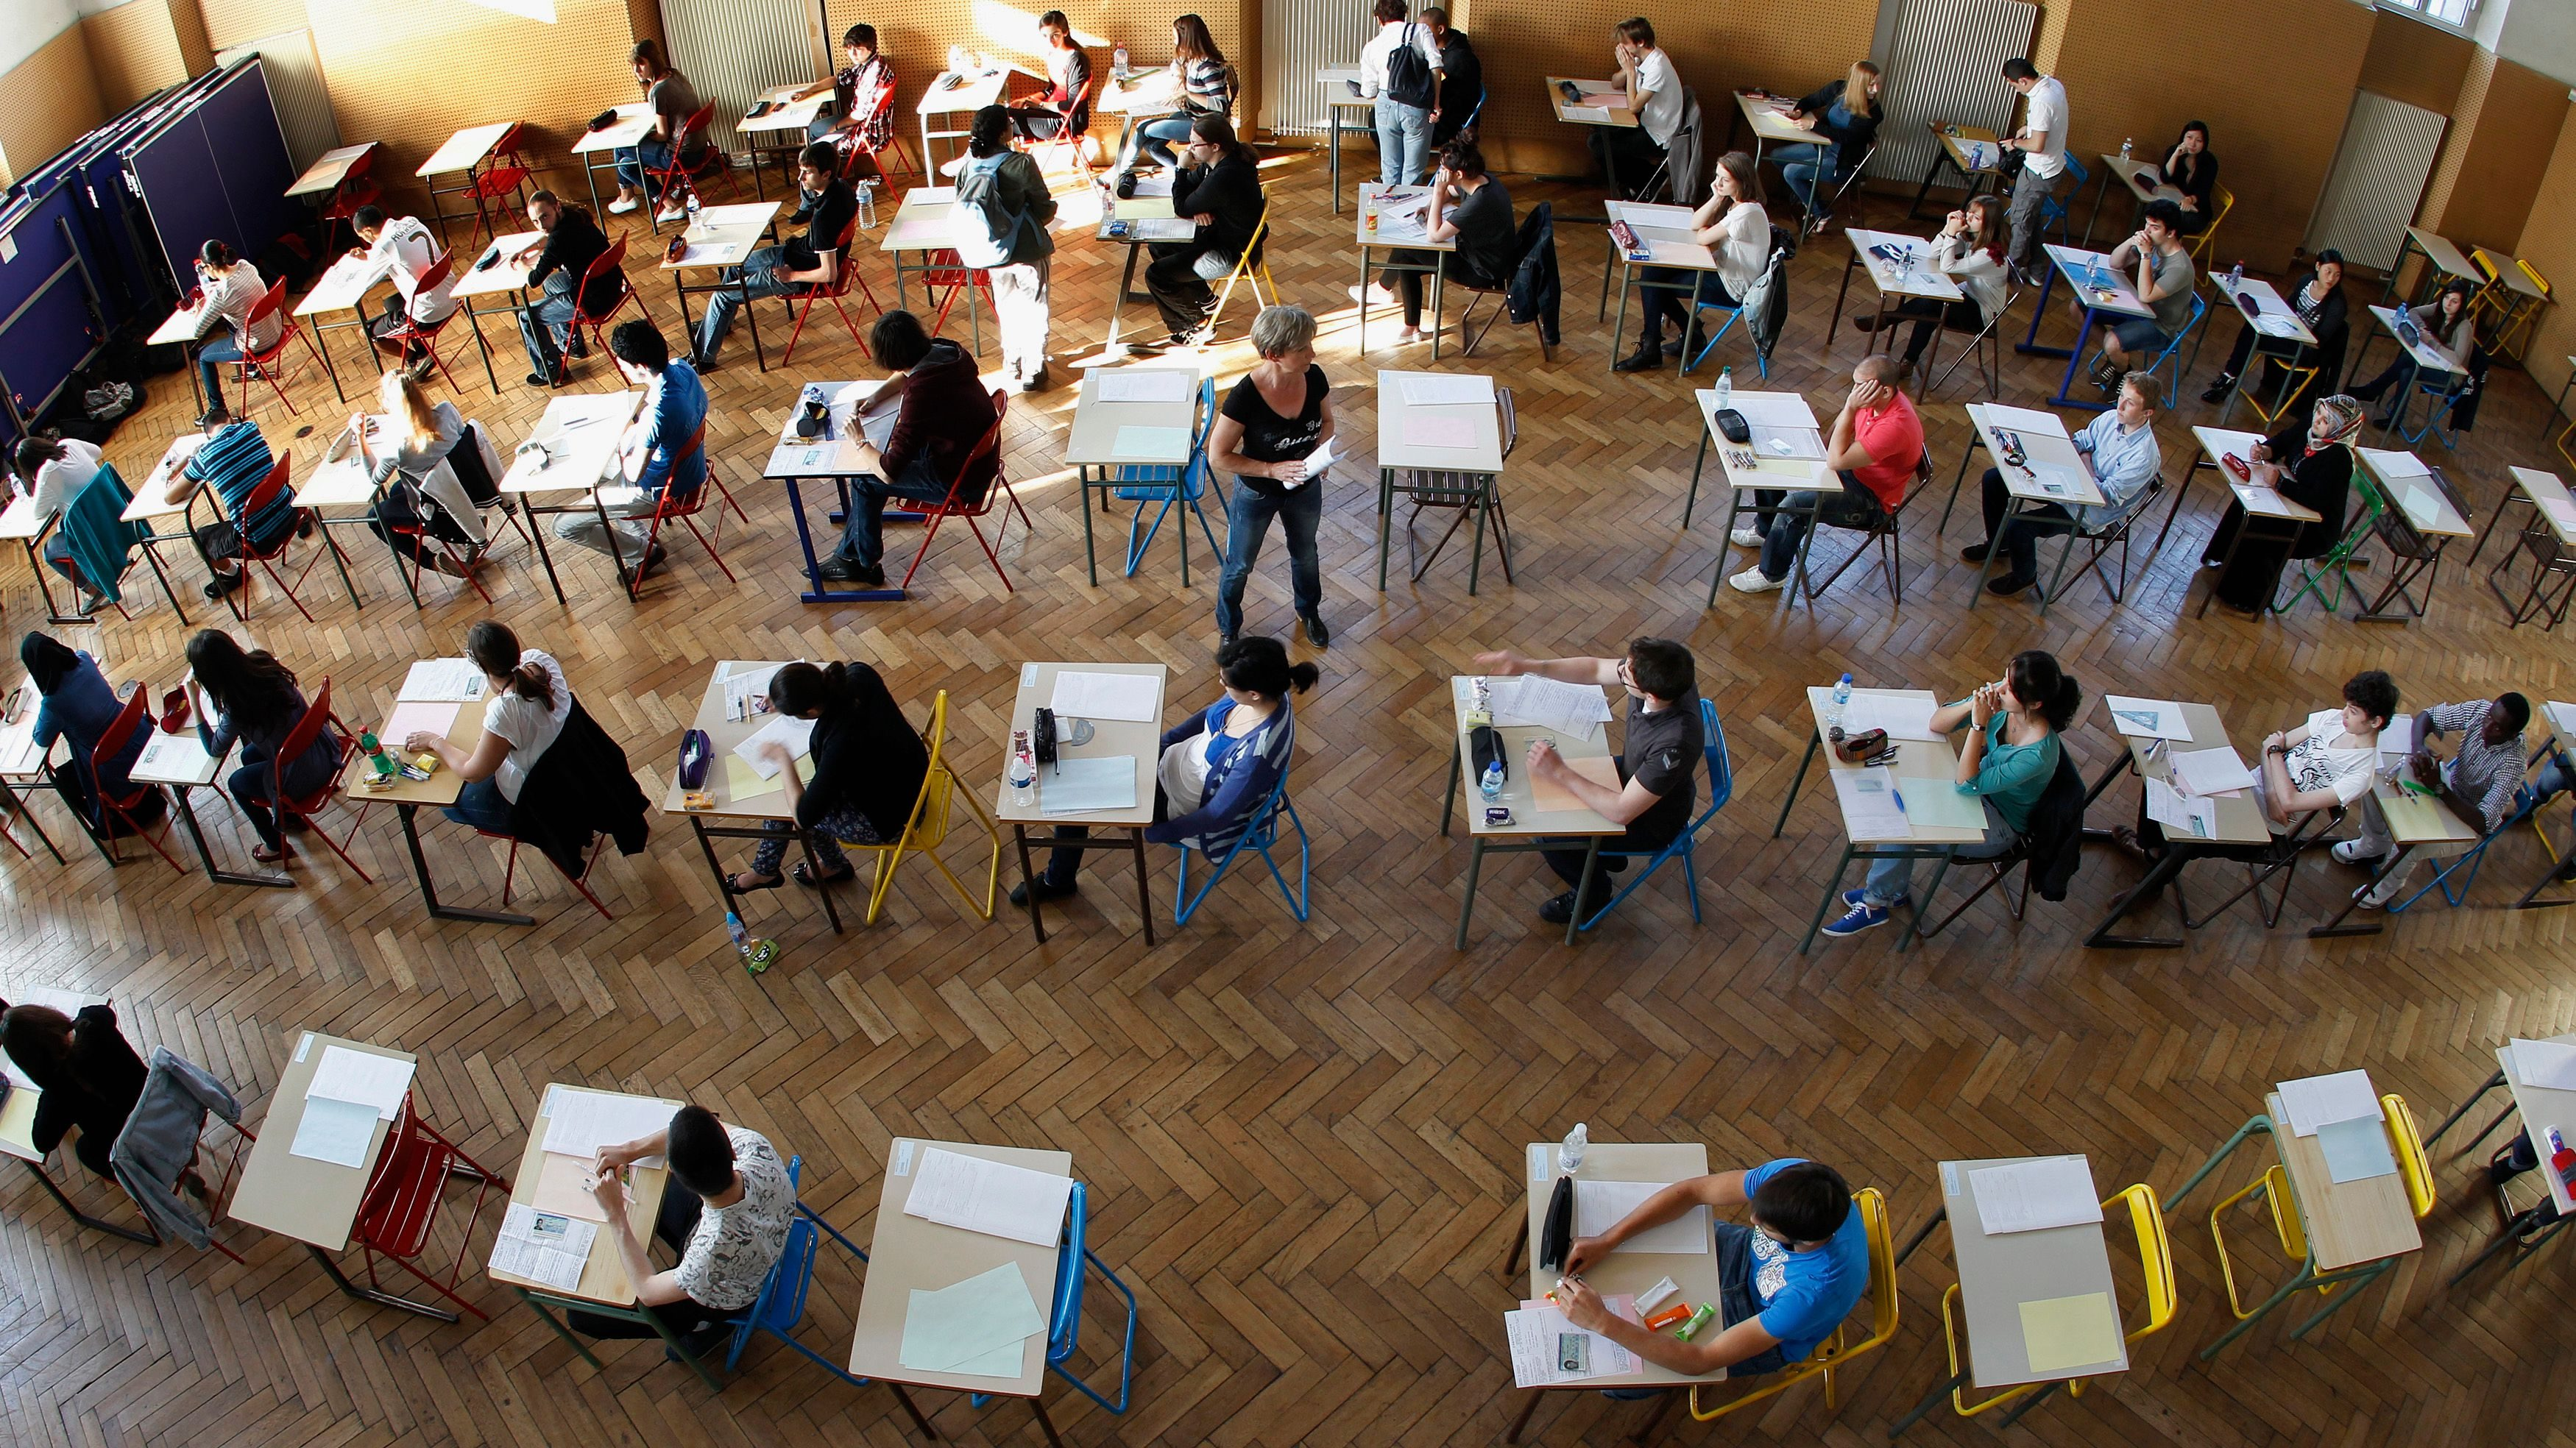 An overhead view of students taking an exam